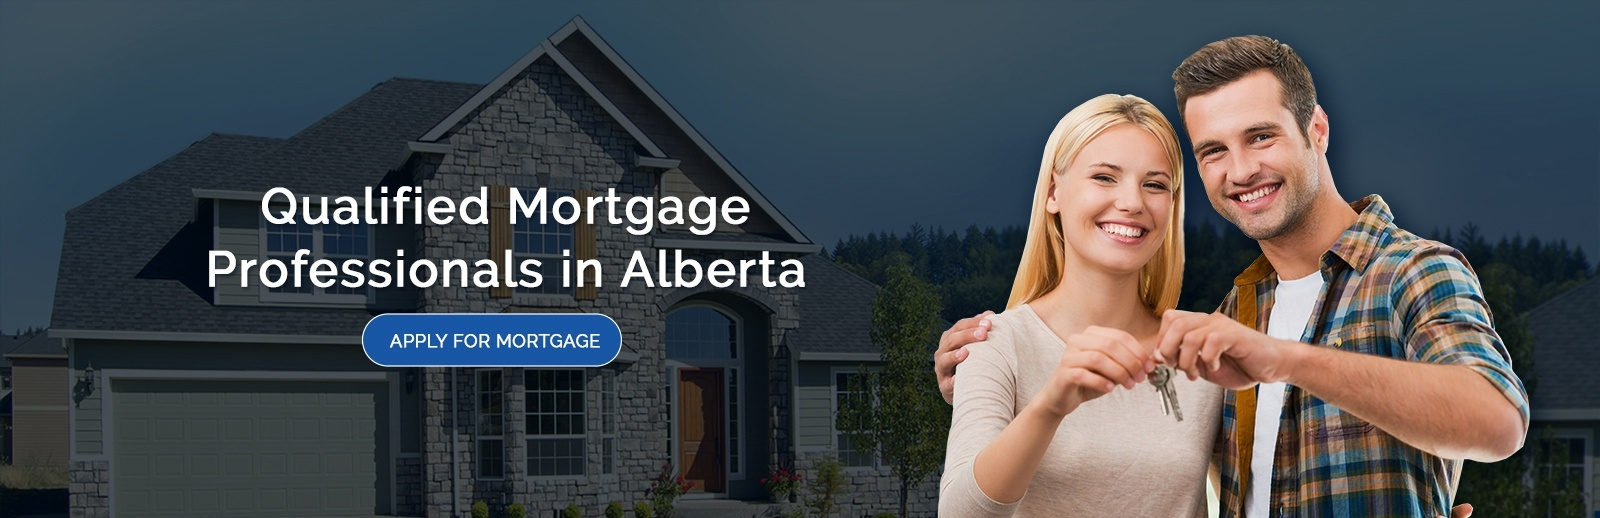 Experienced Mortgage Brokers  Alberta